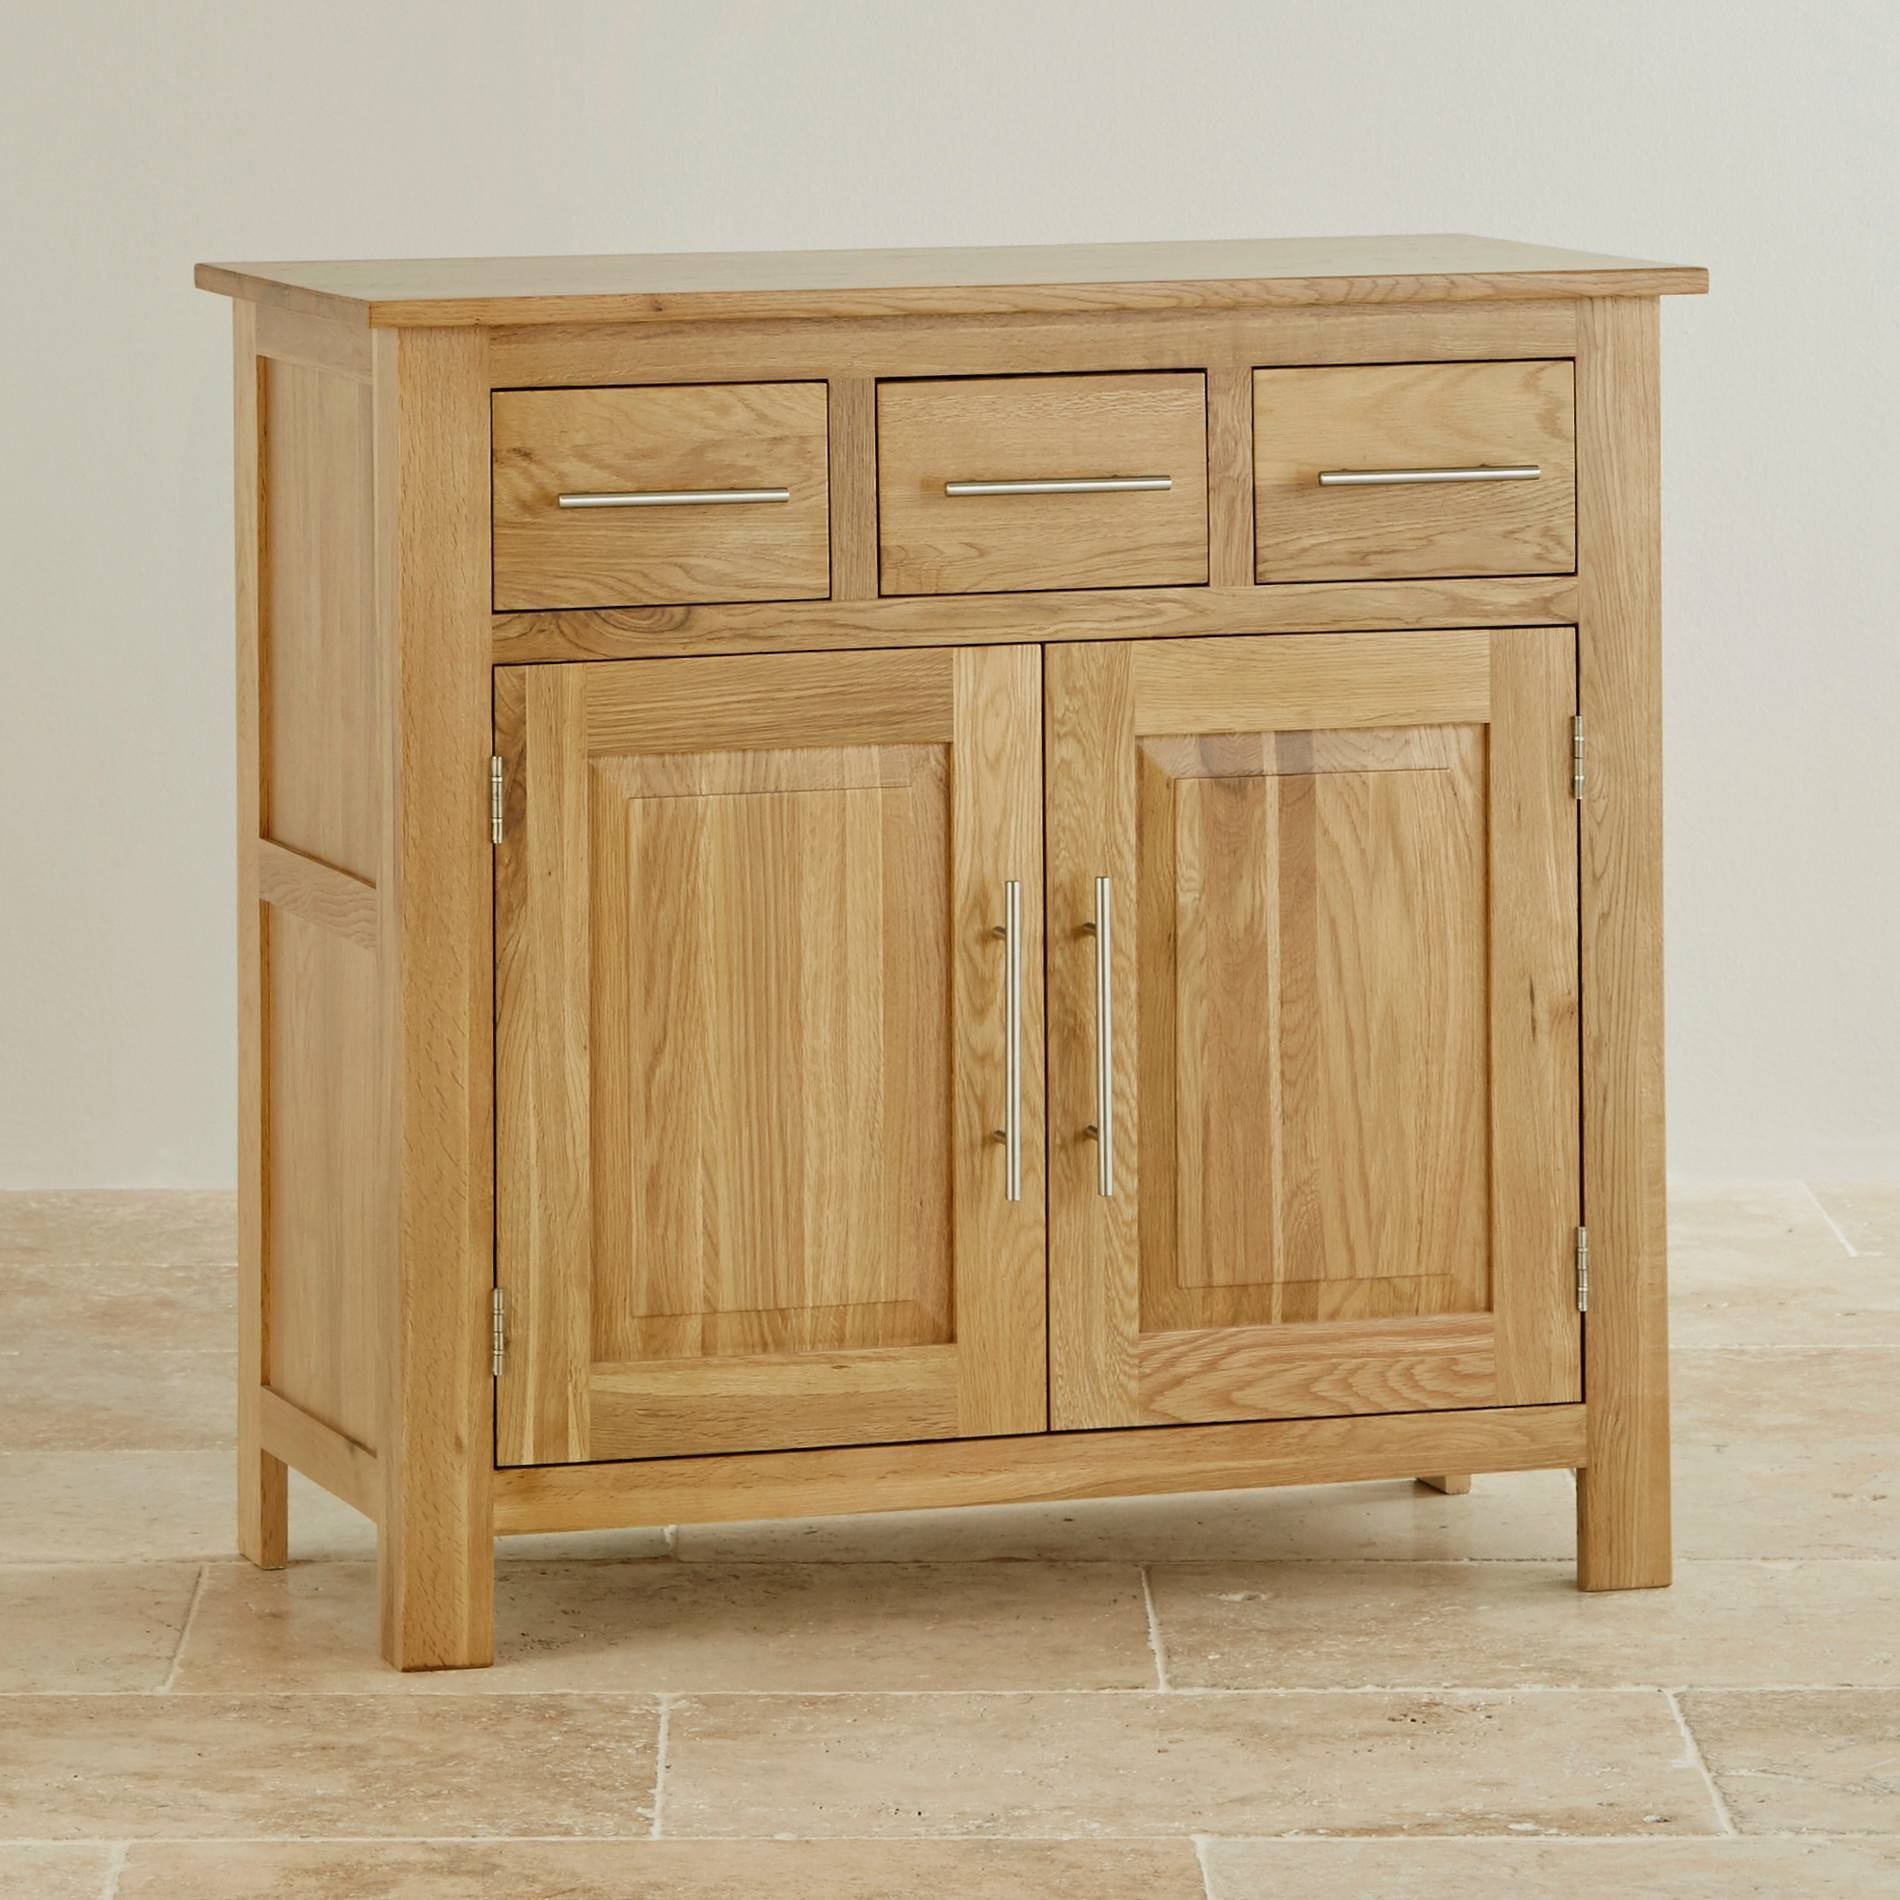 Elegant Small Solid Oak Sideboard – Buildsimplehome With Regard To Recent Oak Furniture Land Sideboards (#7 of 15)